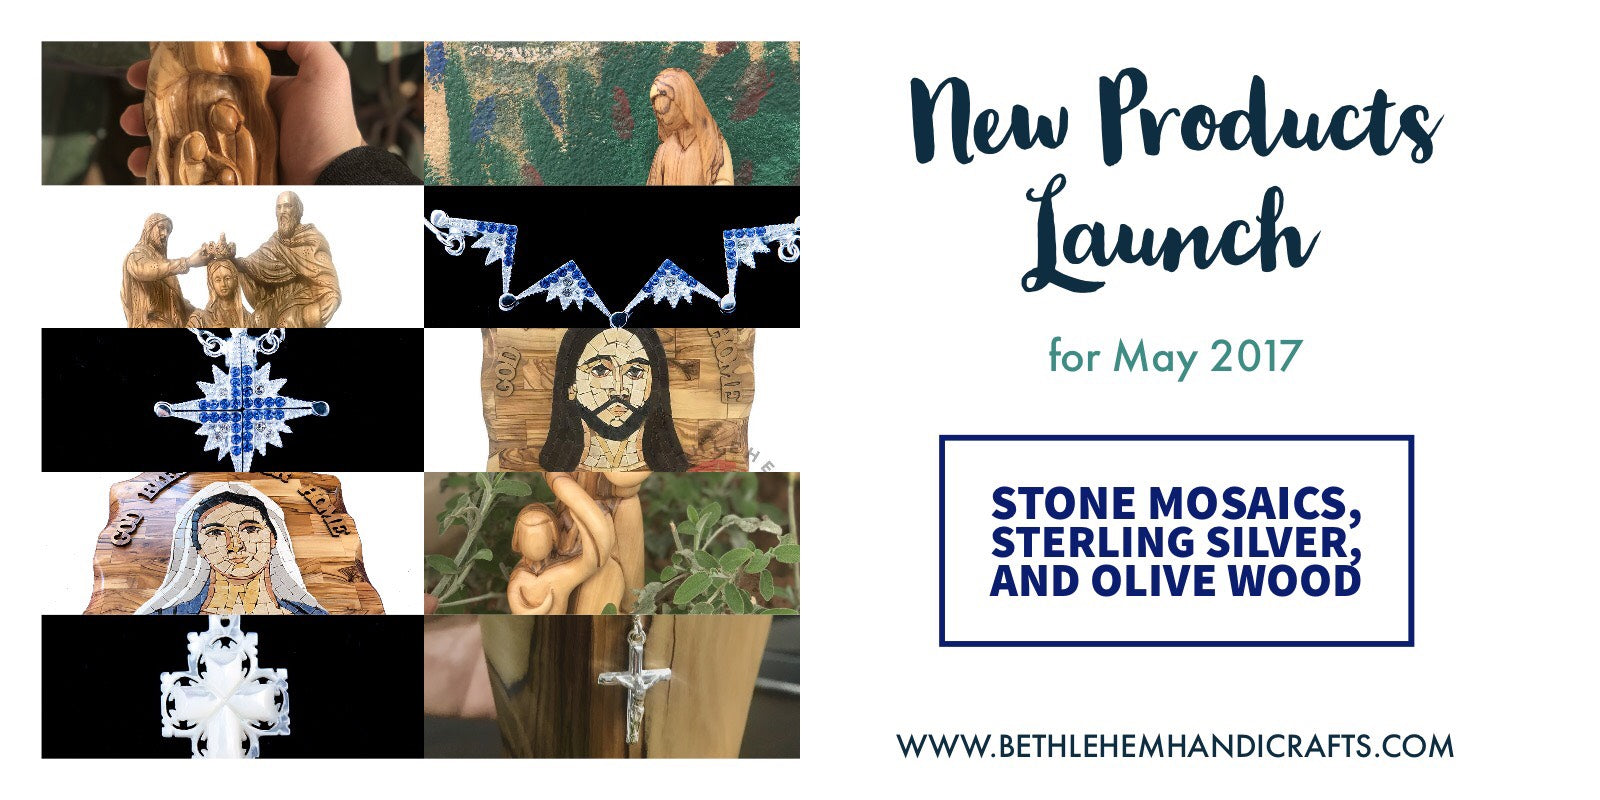 New Products Launch for May 2017